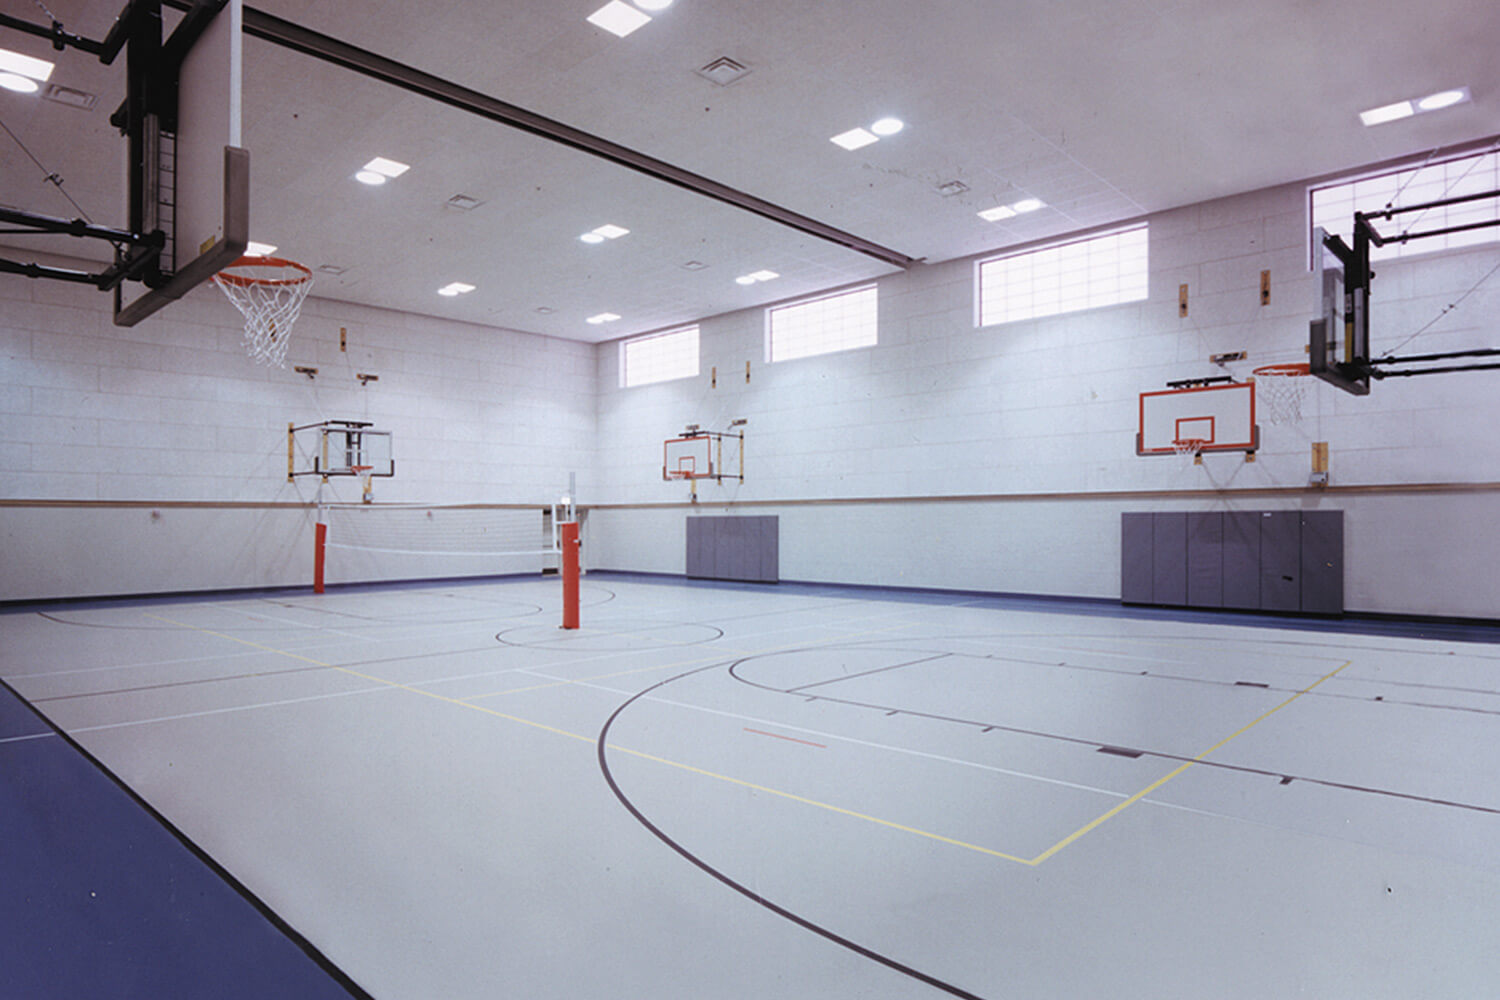 Salvation Army Training Center basketball court